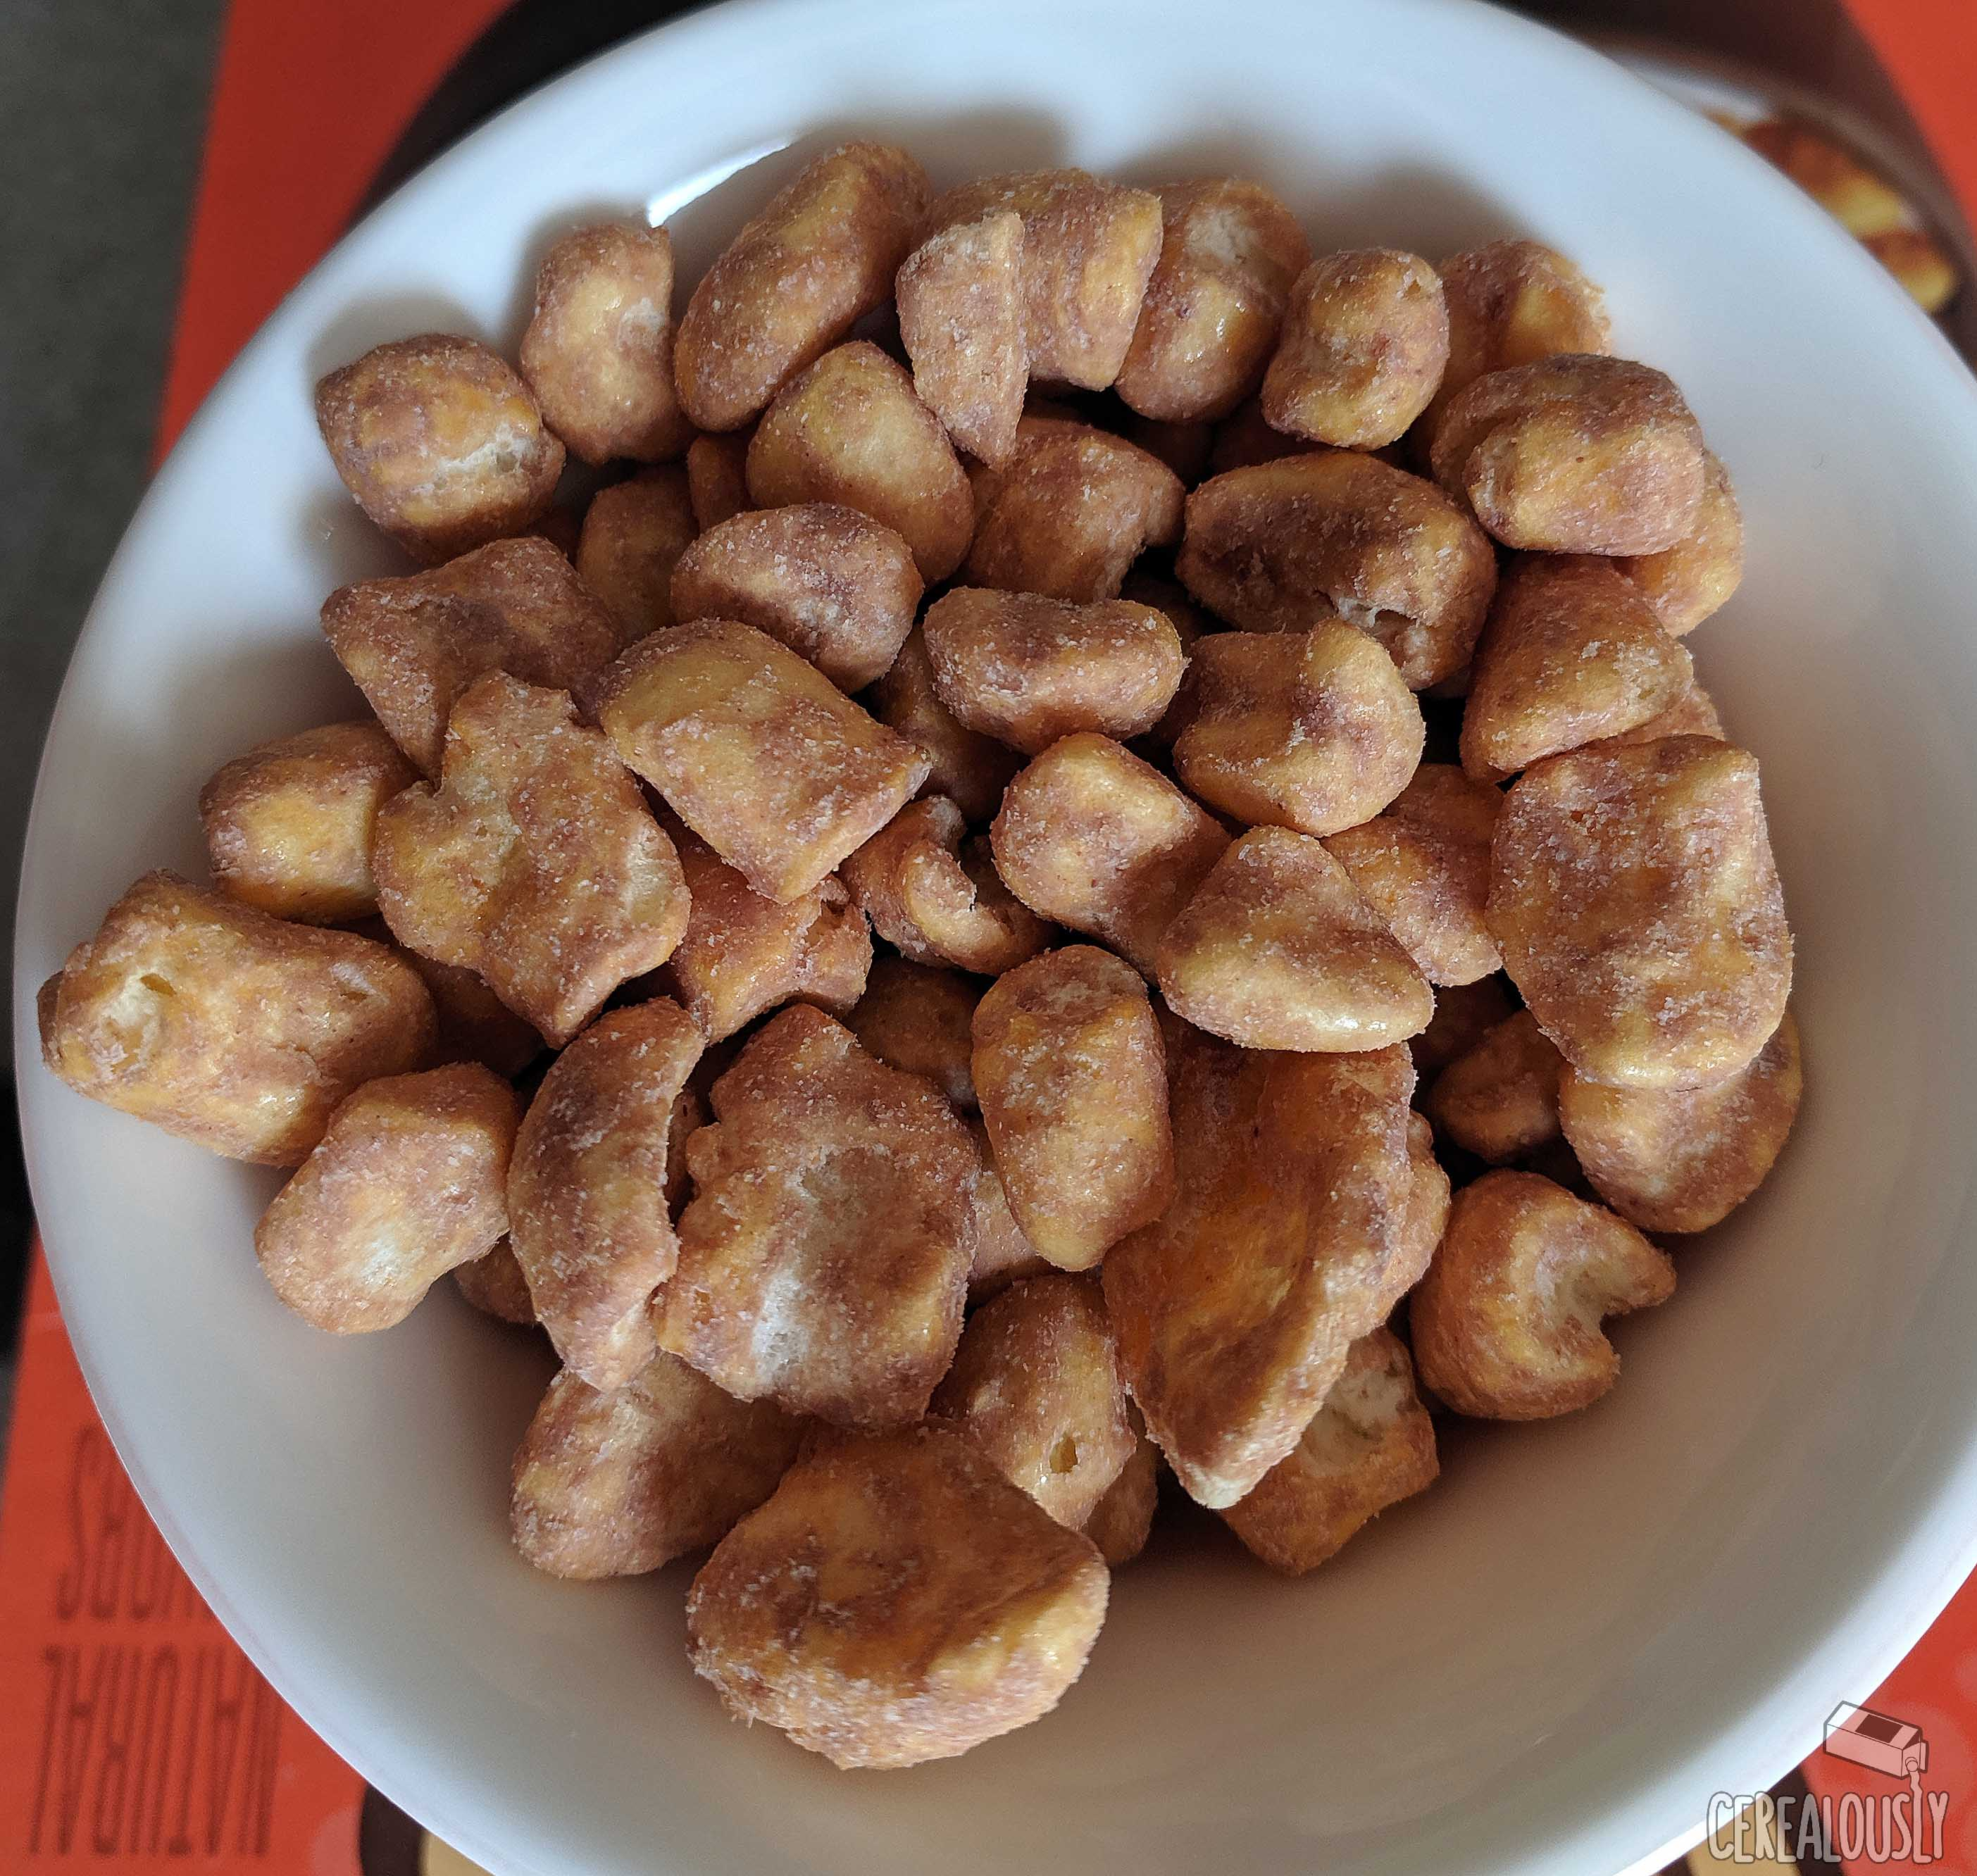 Review: Kellogg's Chocolate Peanut Butter Corn Pops Cereal